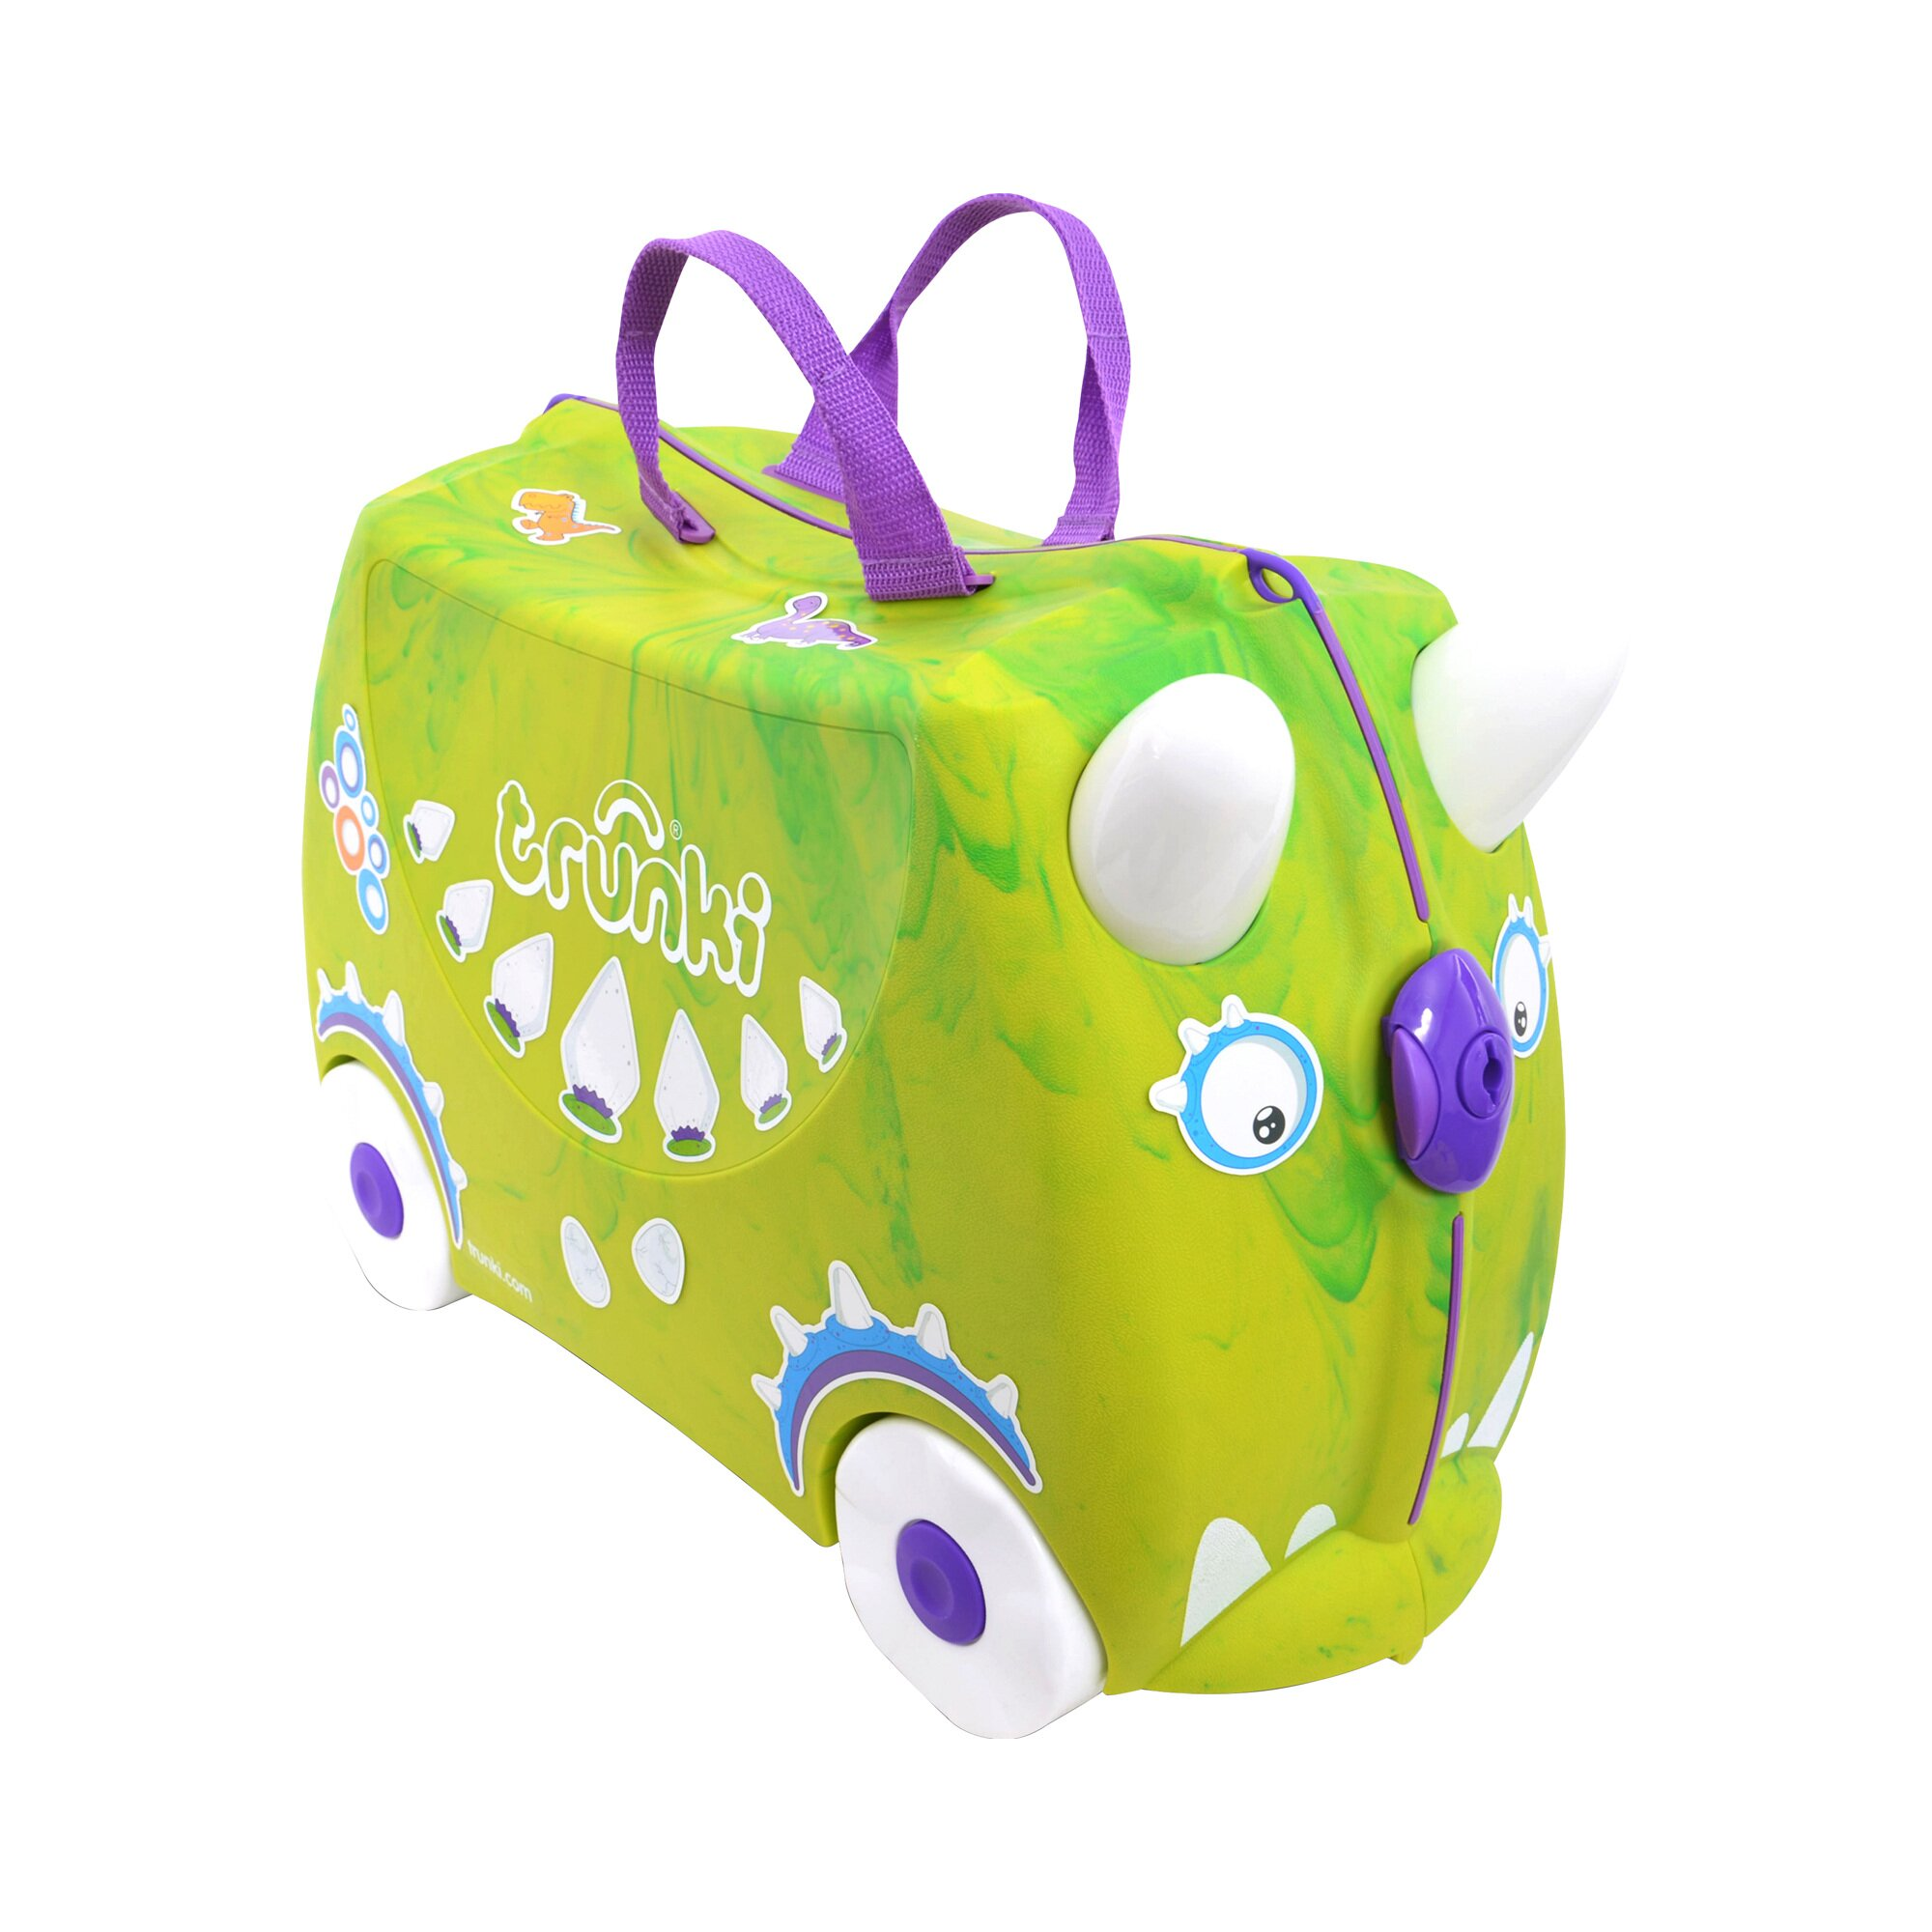 Trunki Kindertrolley Trunkisaurus Rex